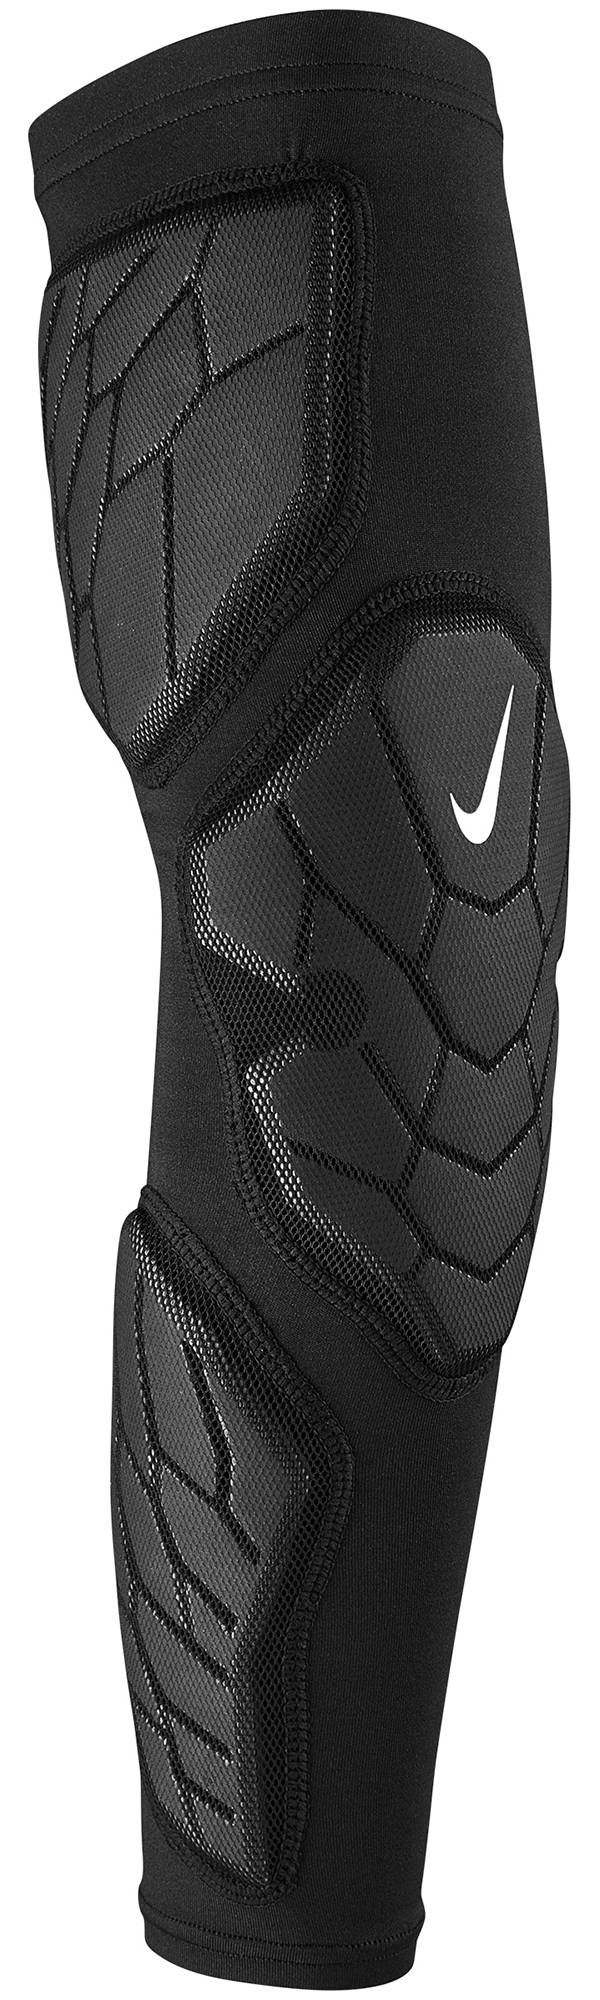 Nike Pro Hyperstrong Padded Arm Sleeve 3.0 product image